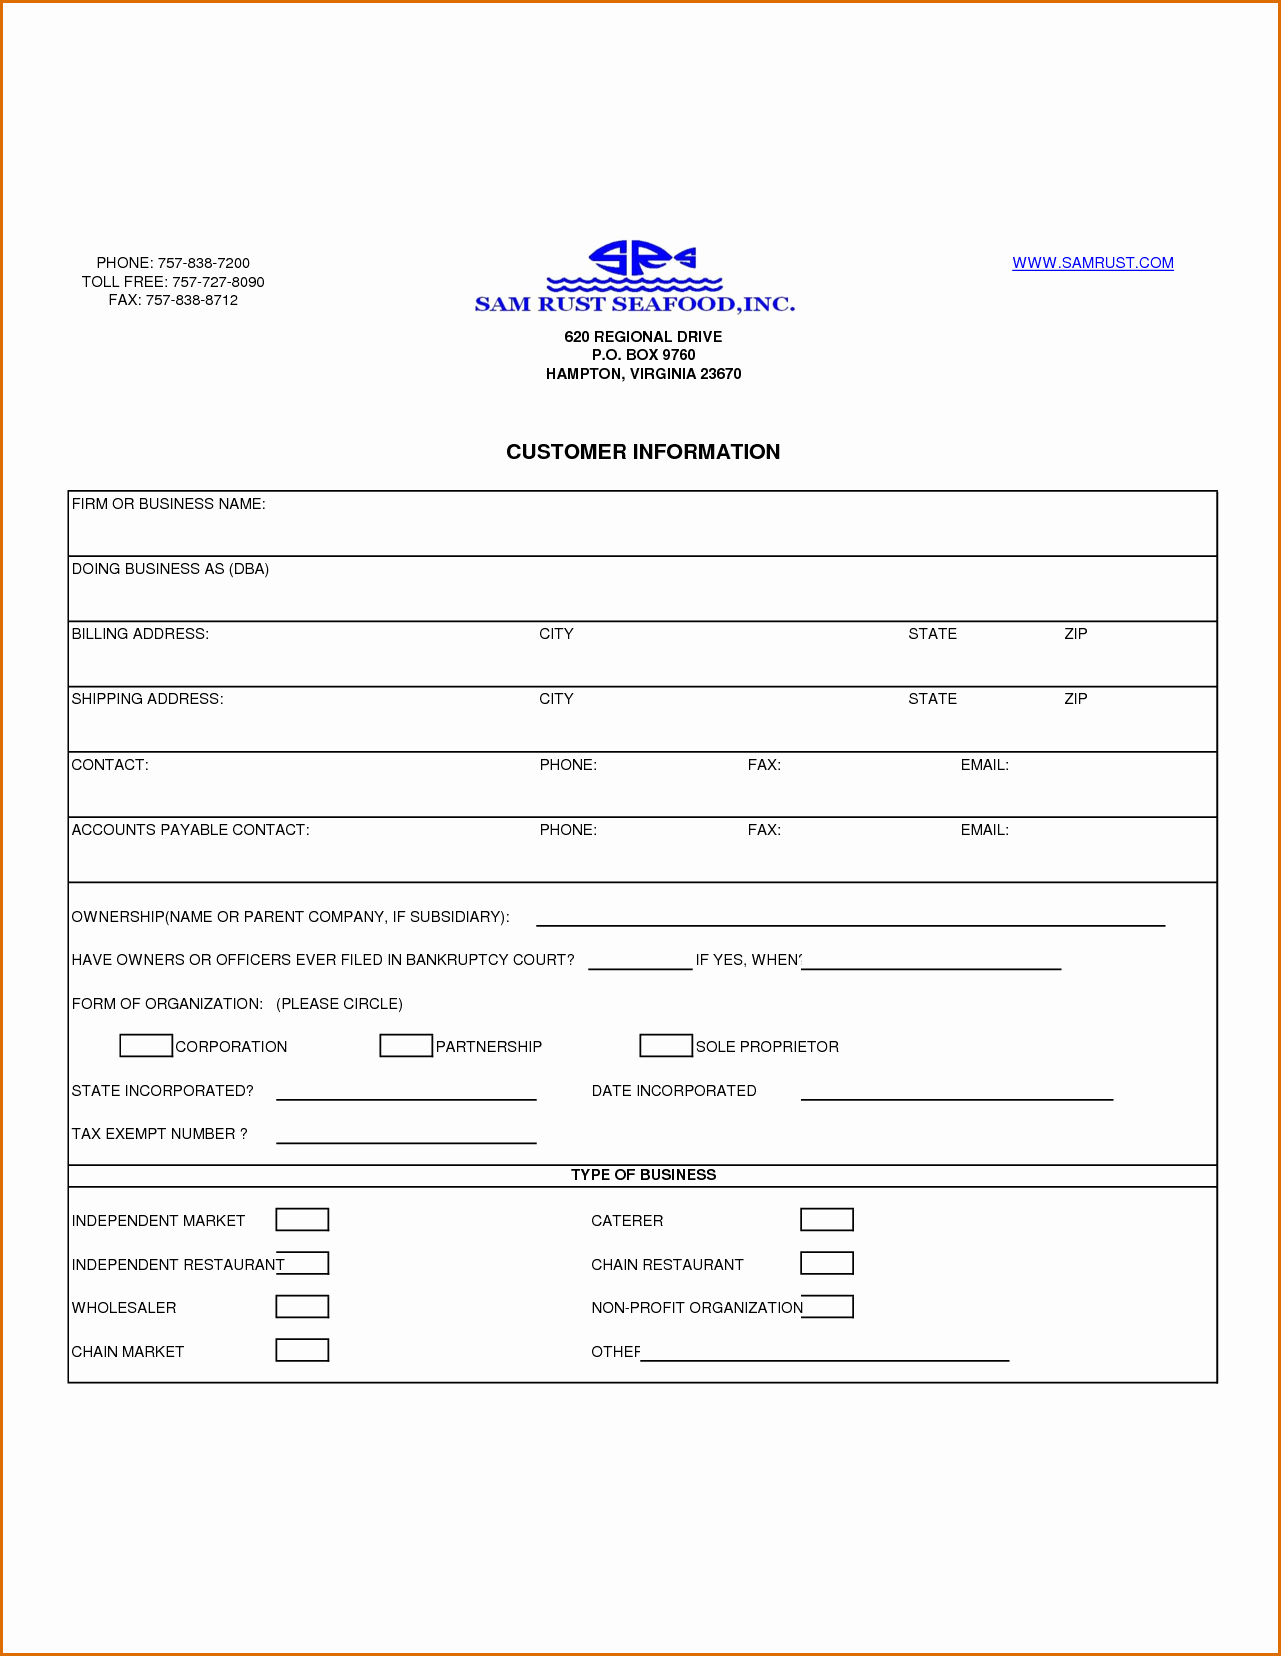 Client Contact form Lovely 13 Customer Information form Template